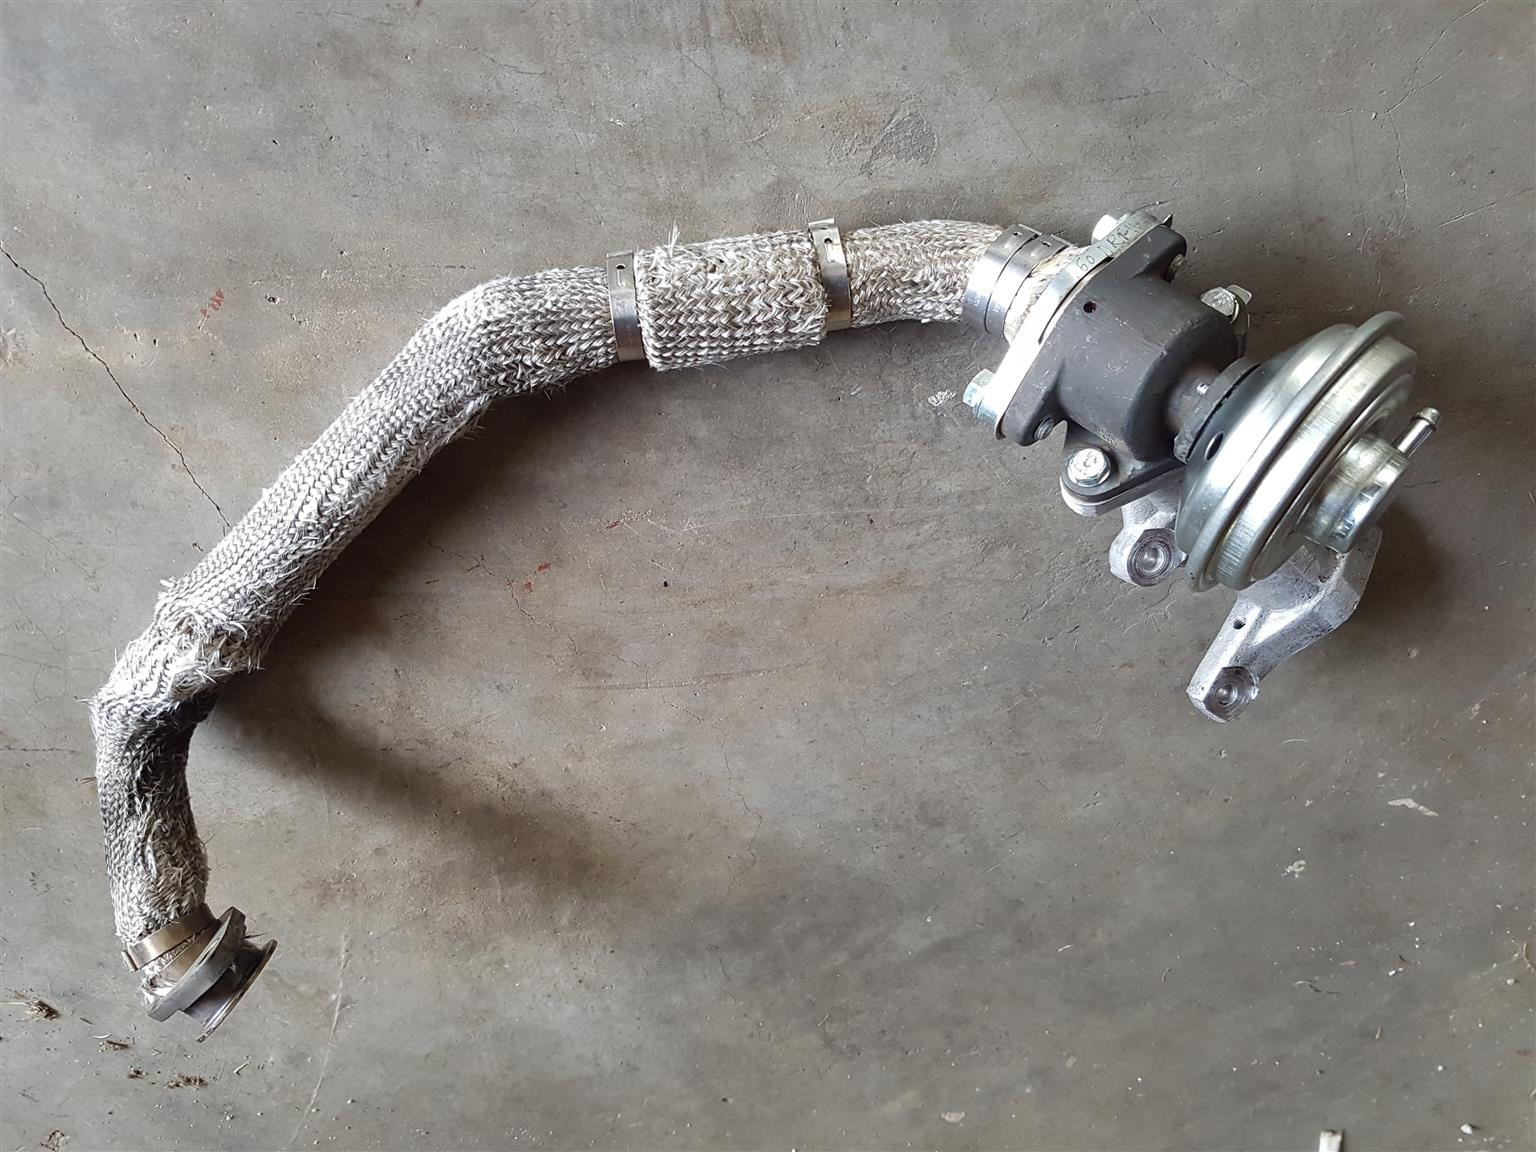 TATA XENON 2.2 EGR Valve with pipe assembly